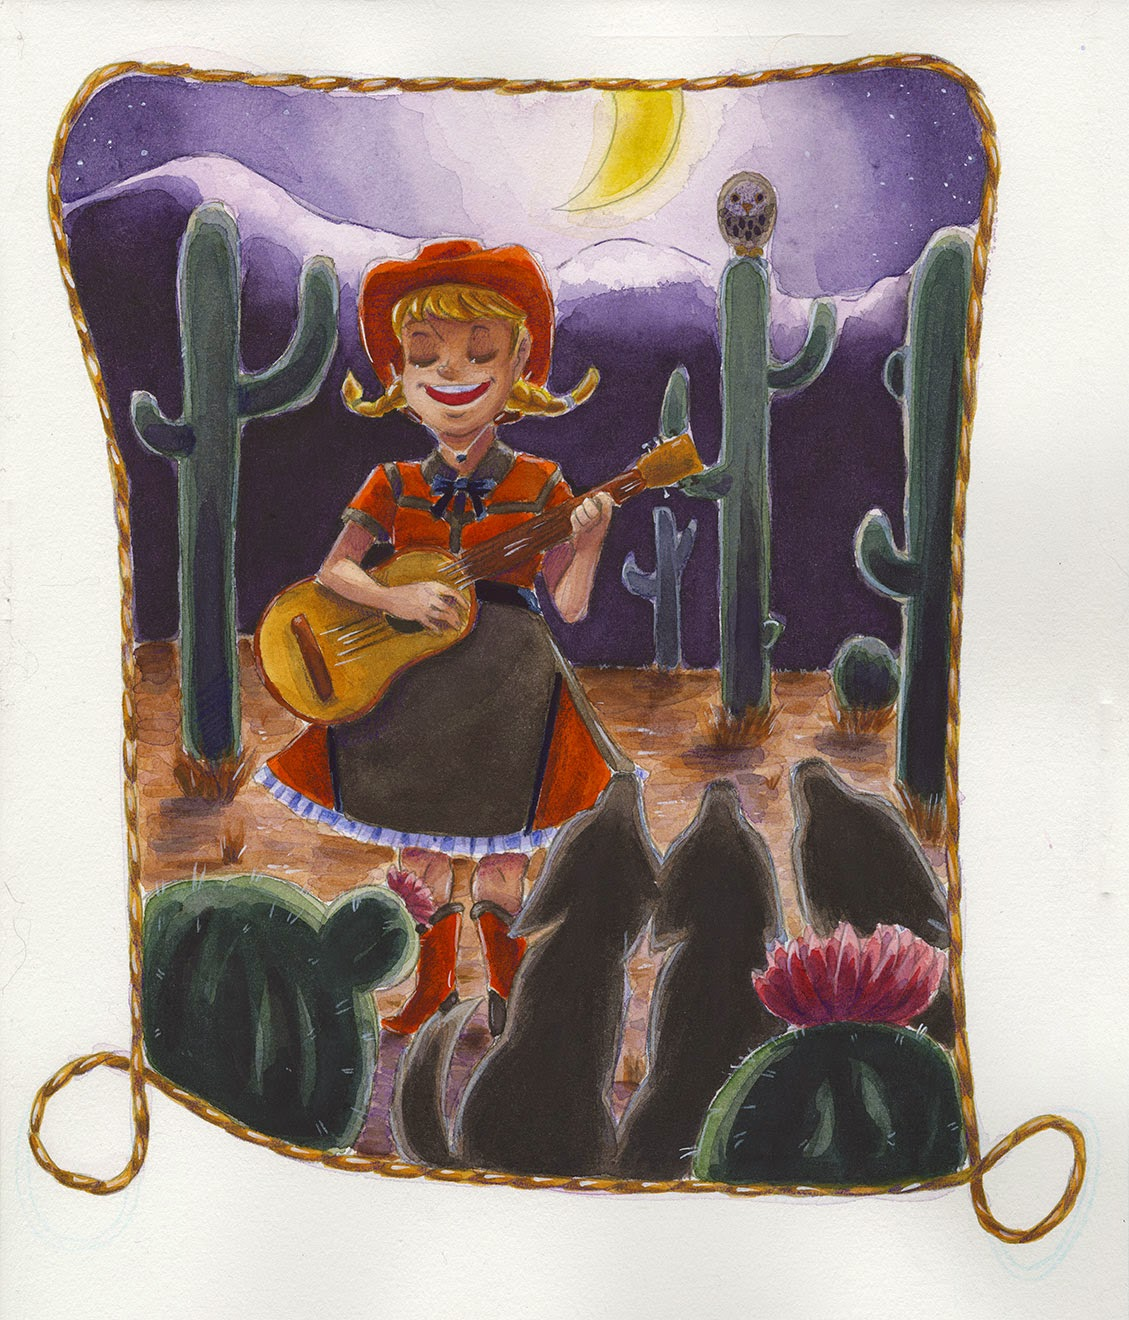 watercolor, Nattosoup Studio, illustration, cowgirl, western wear, coyotes, guitar